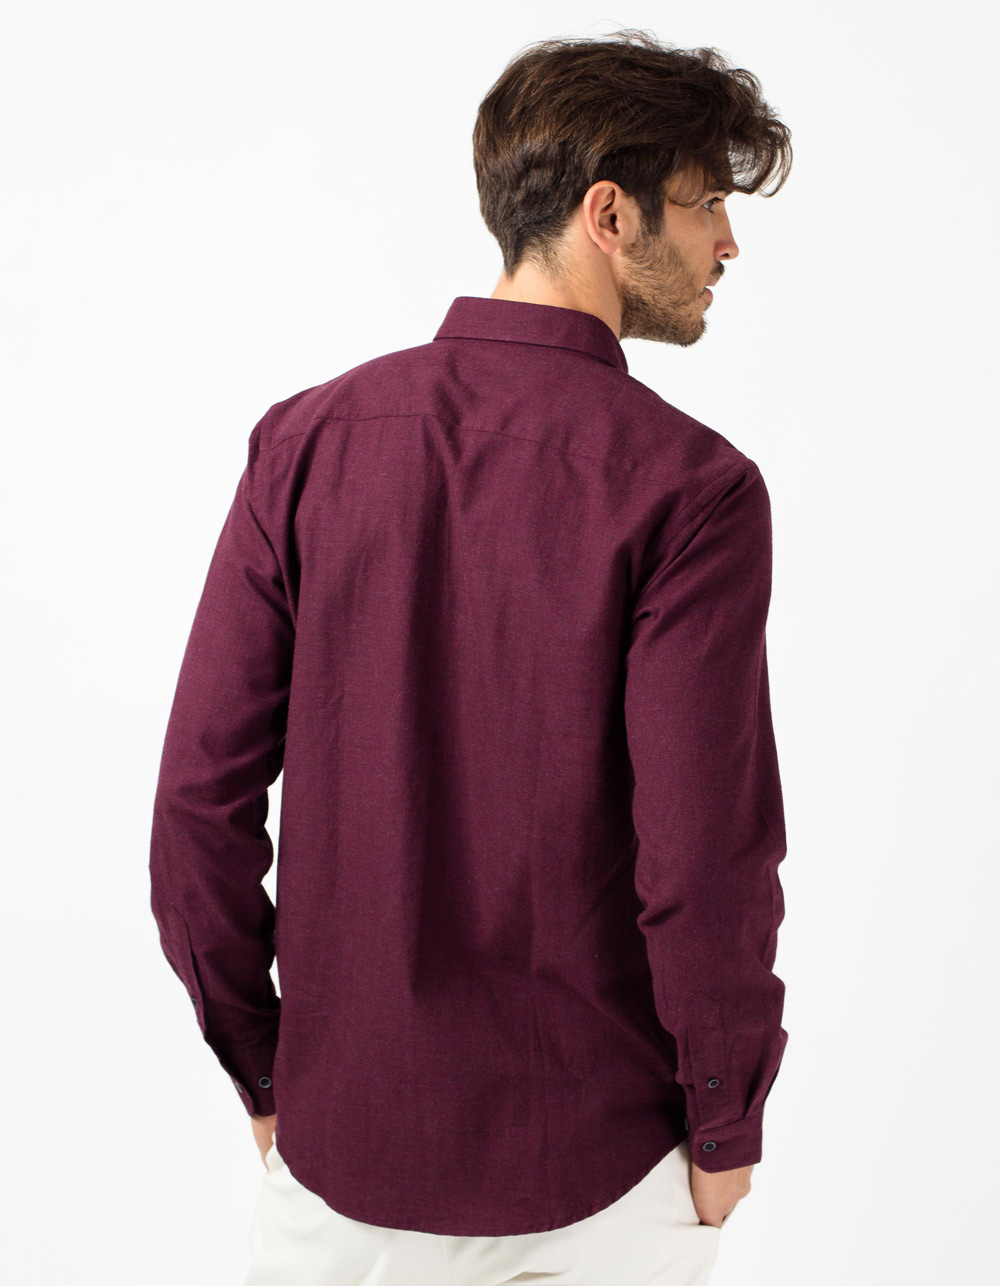 Maroon herringbone shirt - Backside